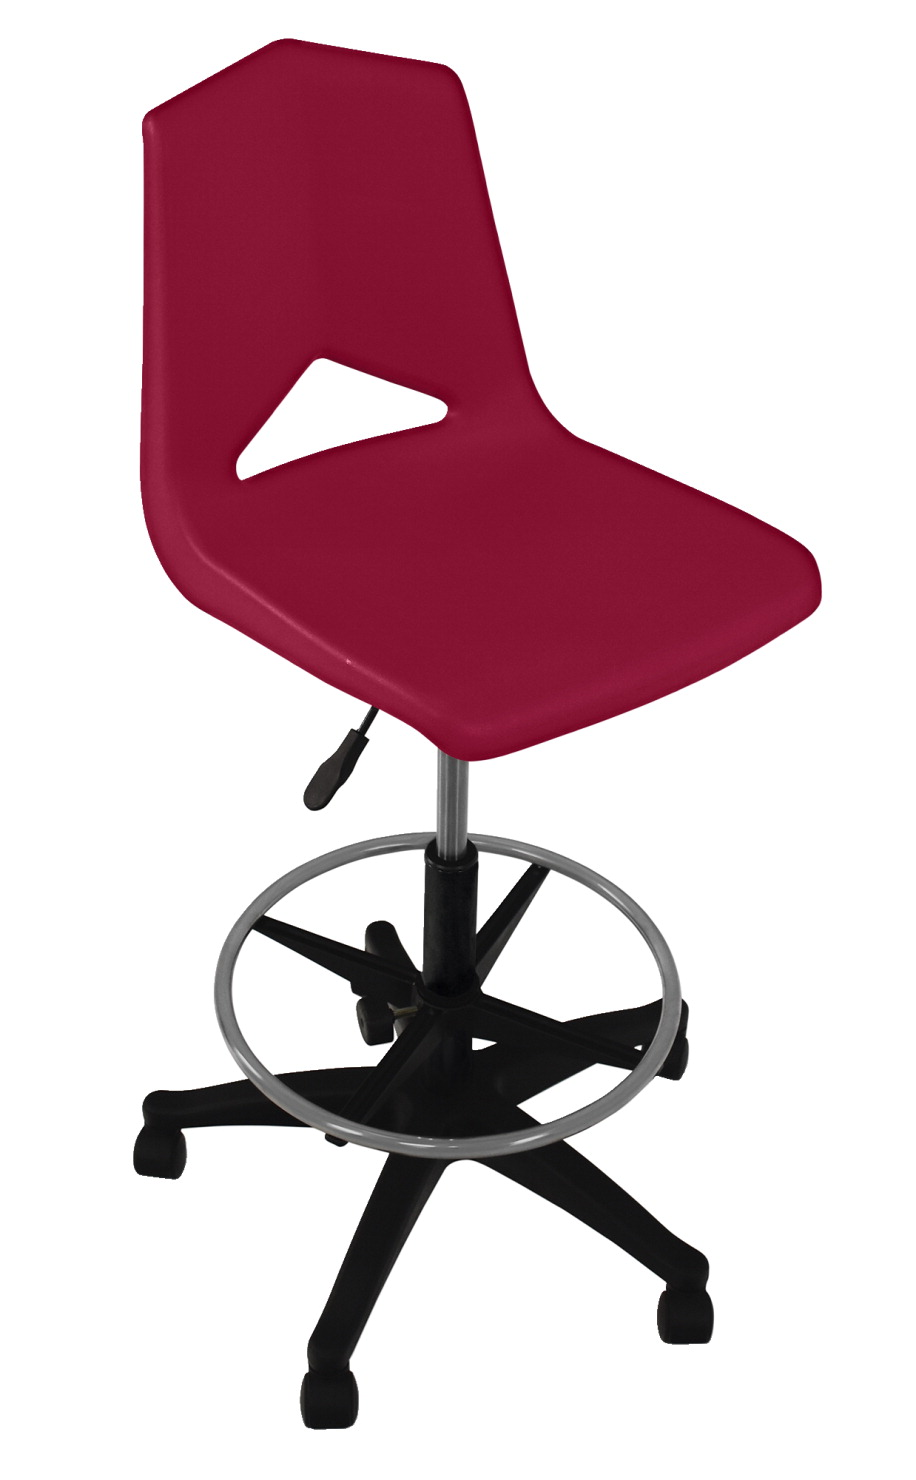 Royal Seating Pneumatic Lift Chair with Adjustable Foot Ring, A+ Shell